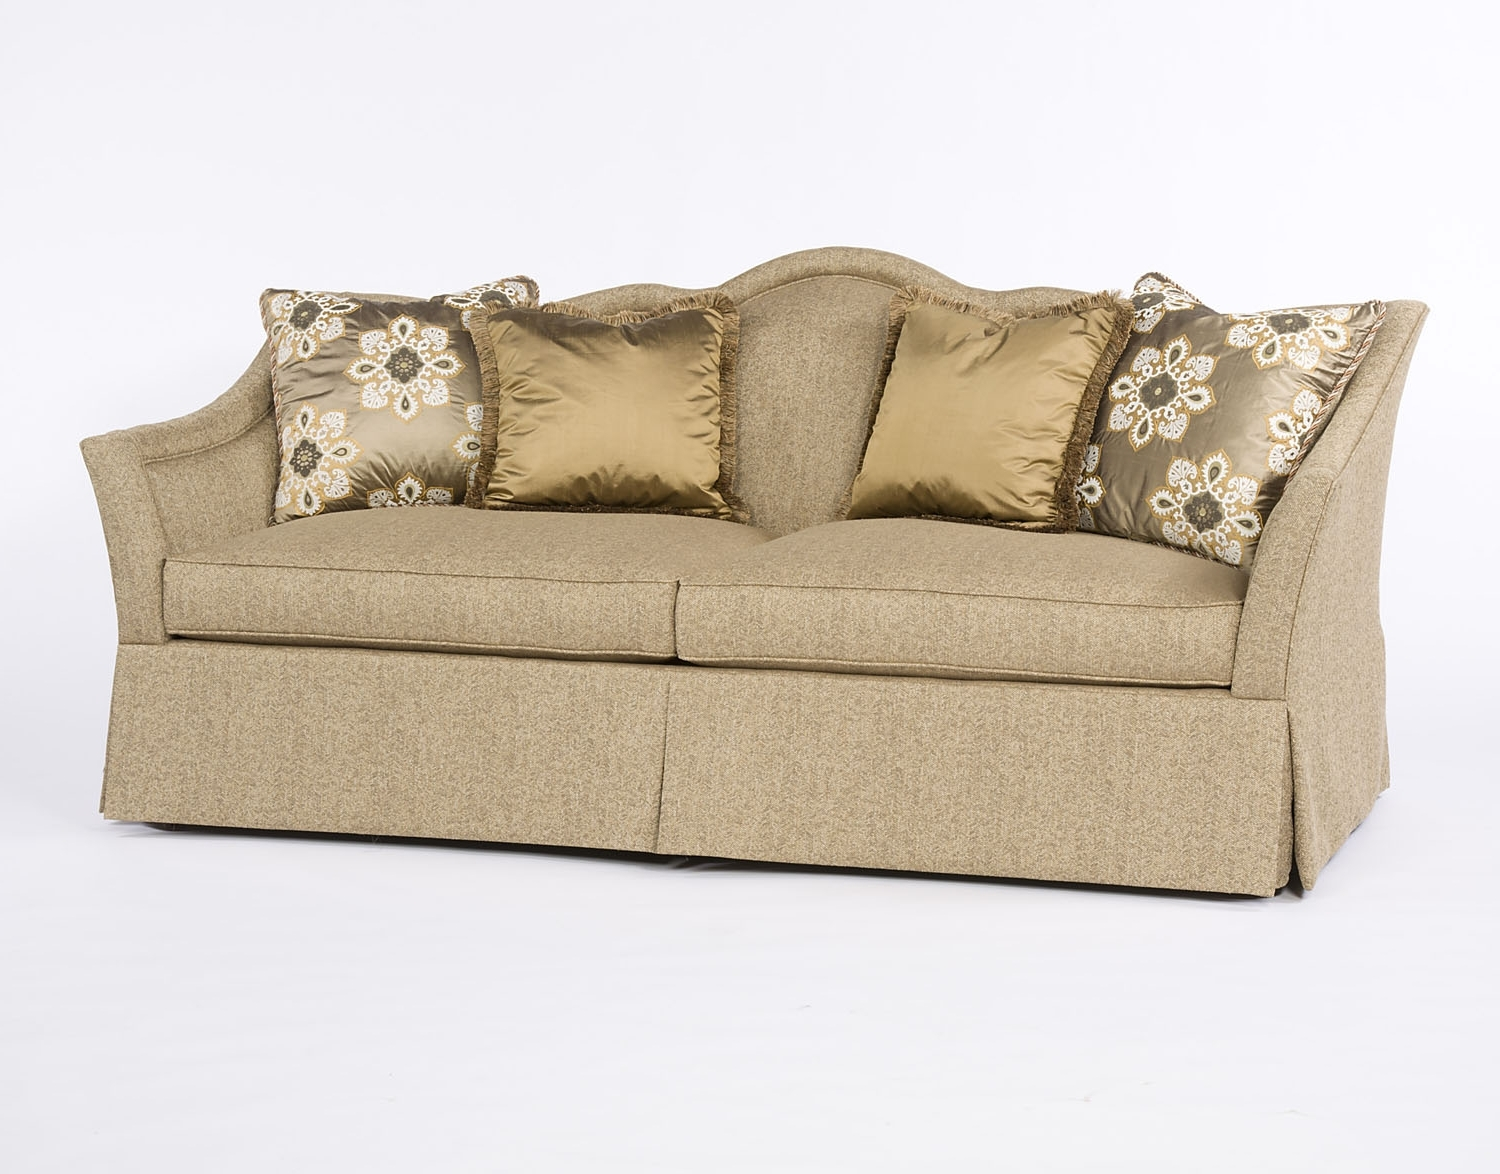 French Style Sofas With Newest Luxury Furniture Store In San Diego, Orange County, Los Angeles (View 20 of 20)